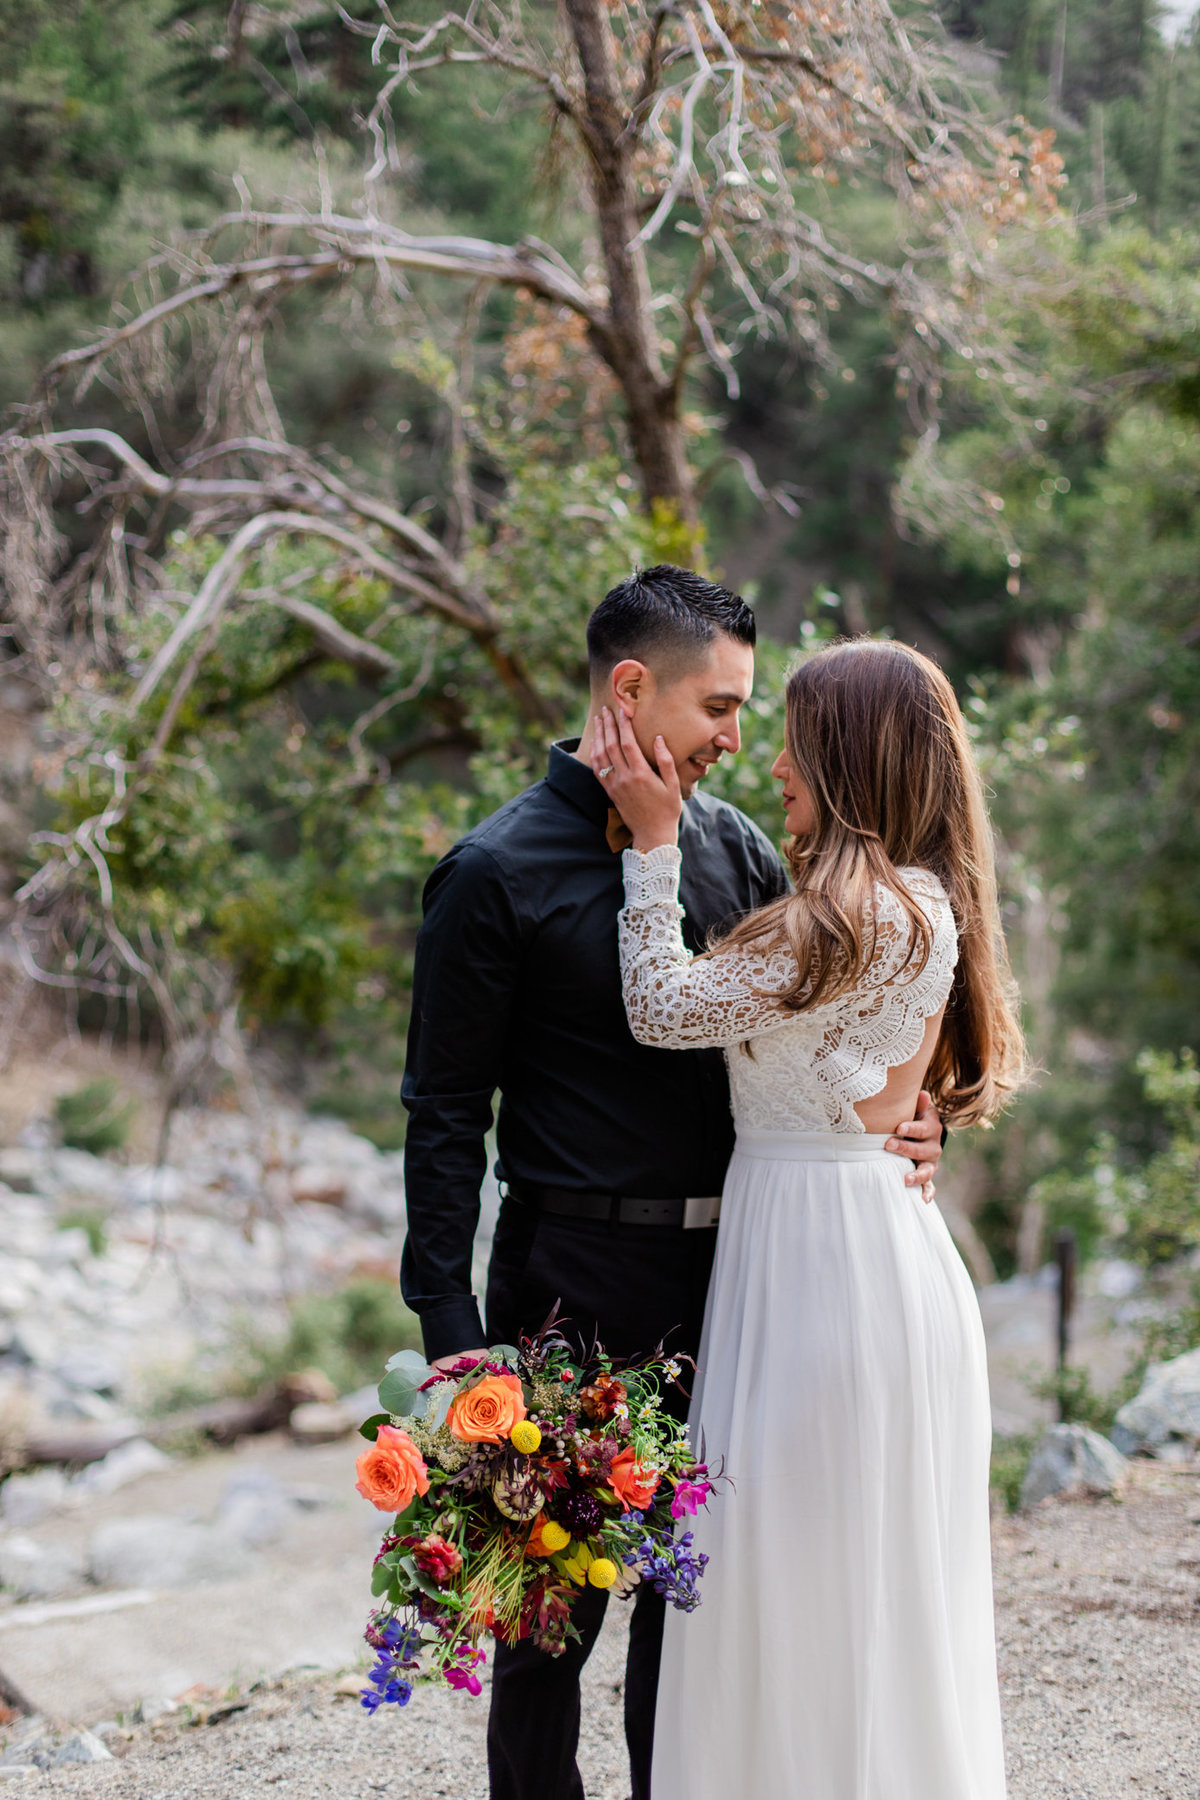 Mt. Baldy Elopement, Wildflower Bouquet, Mt. Baldy Styled Shoot, Mt. Baldy Wedding, Forest Elopement, Forest Wedding, Boho Wedding, Boho Elopement, Mt. Baldy Boho, Forest Boho, Woodland Boho S&W-10